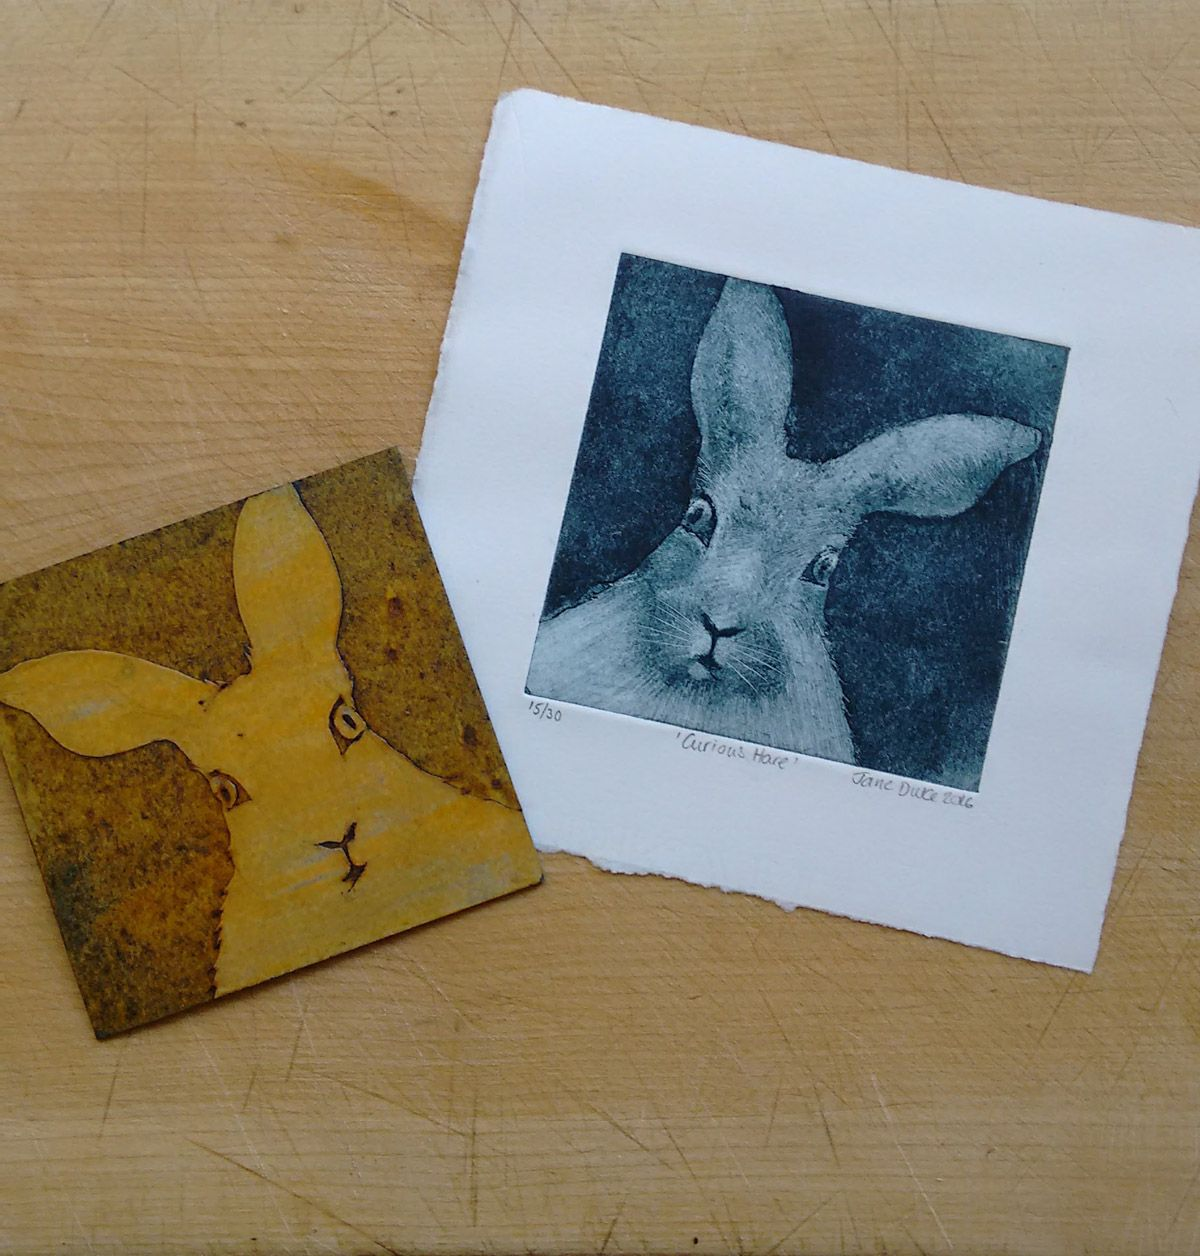 Mini Monoprint collagraph of a hare